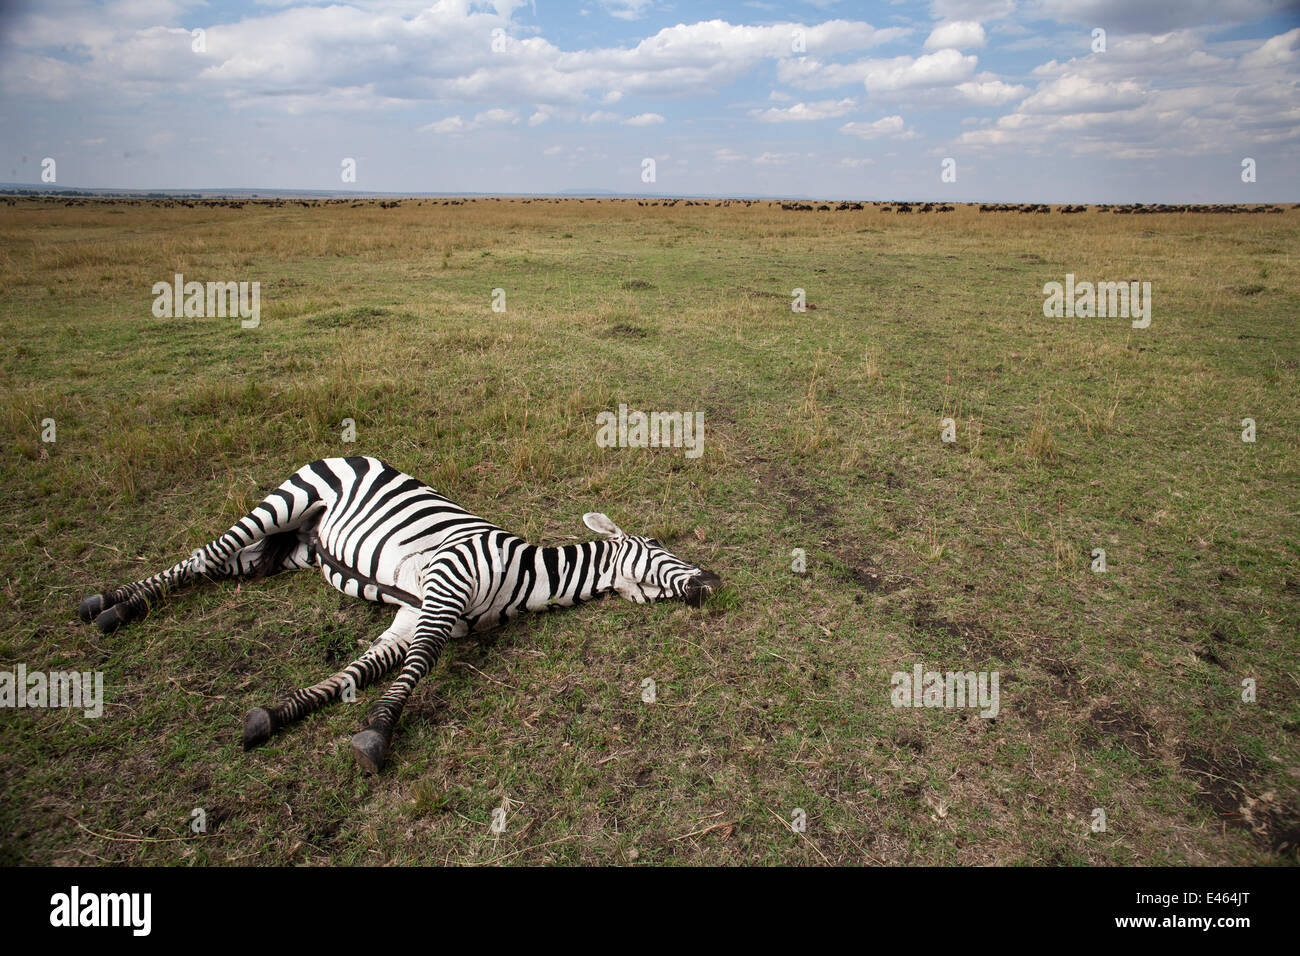 Common or Plains zebra (Equus quagga burchellii) lying dead on the savanna grassland, Masai Mara National Reserve, - Stock Image